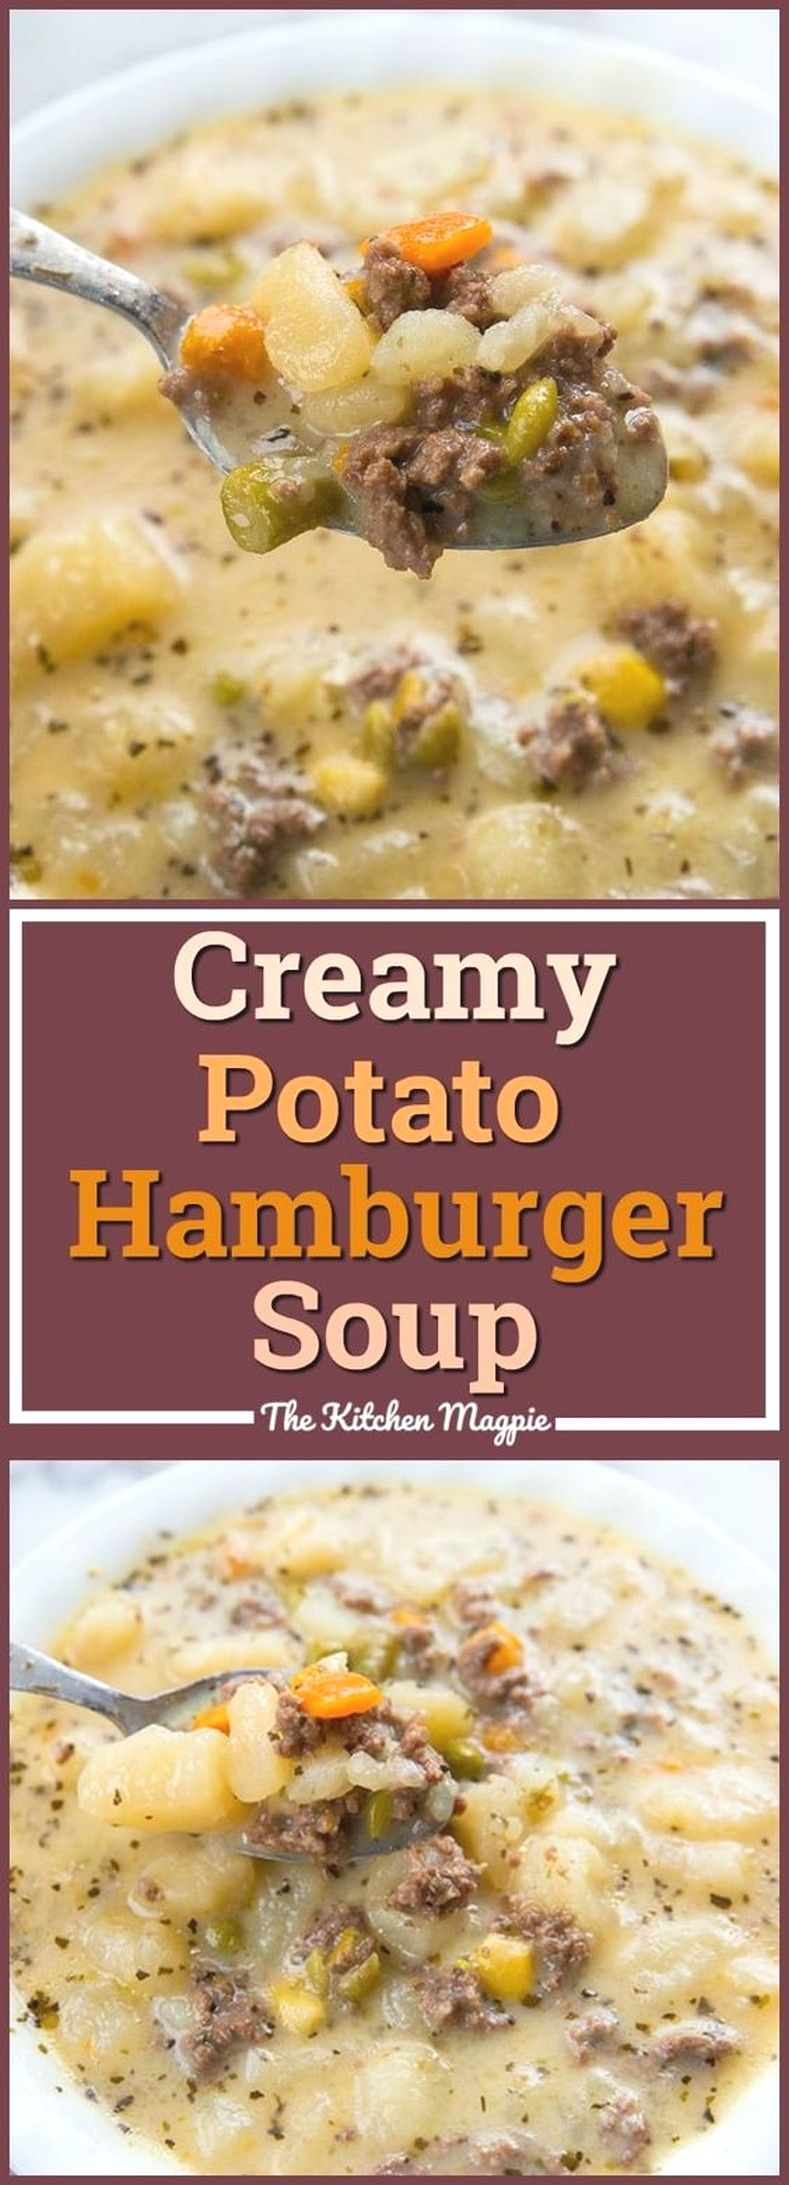 Creamy Potato & Hamburger Soup | Easy Soup Recipes Ideas images